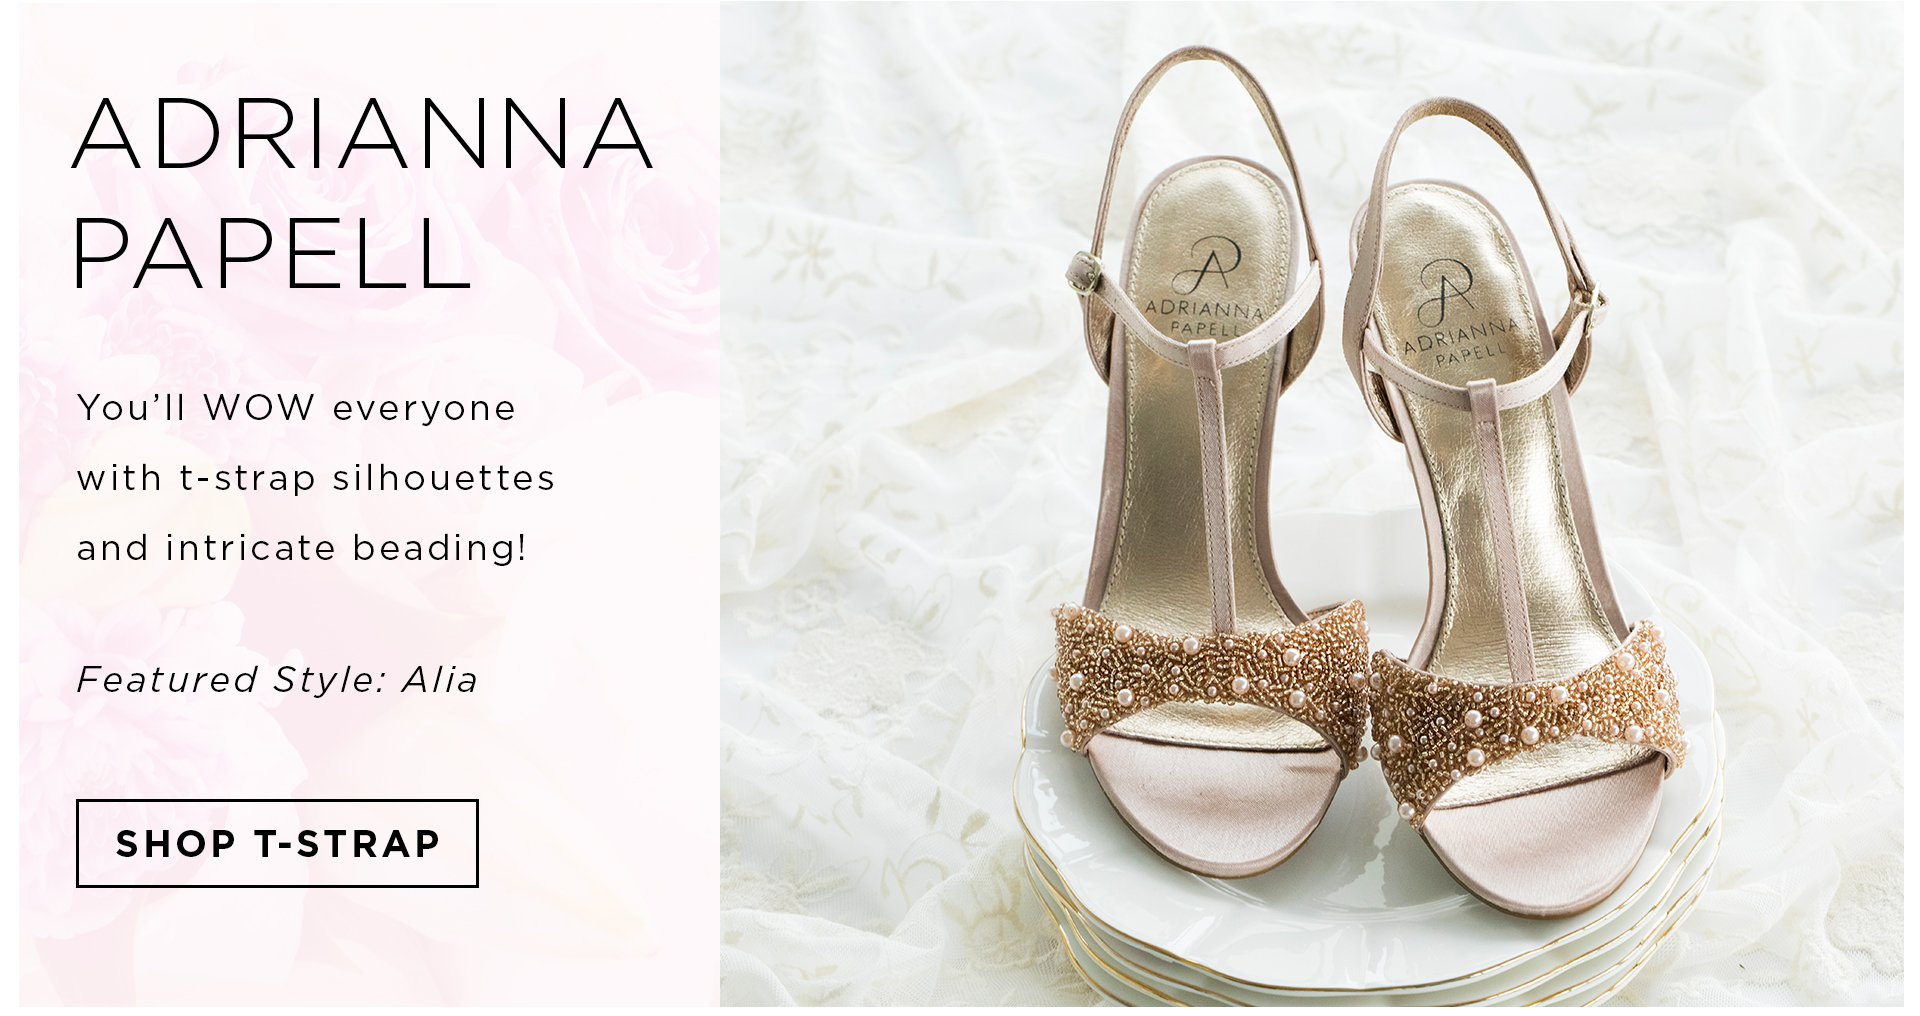 791e570e1d05 Header  Wedding Footwear Favorites Badgley Mischka Shop Nina Adrianna  Papell ...